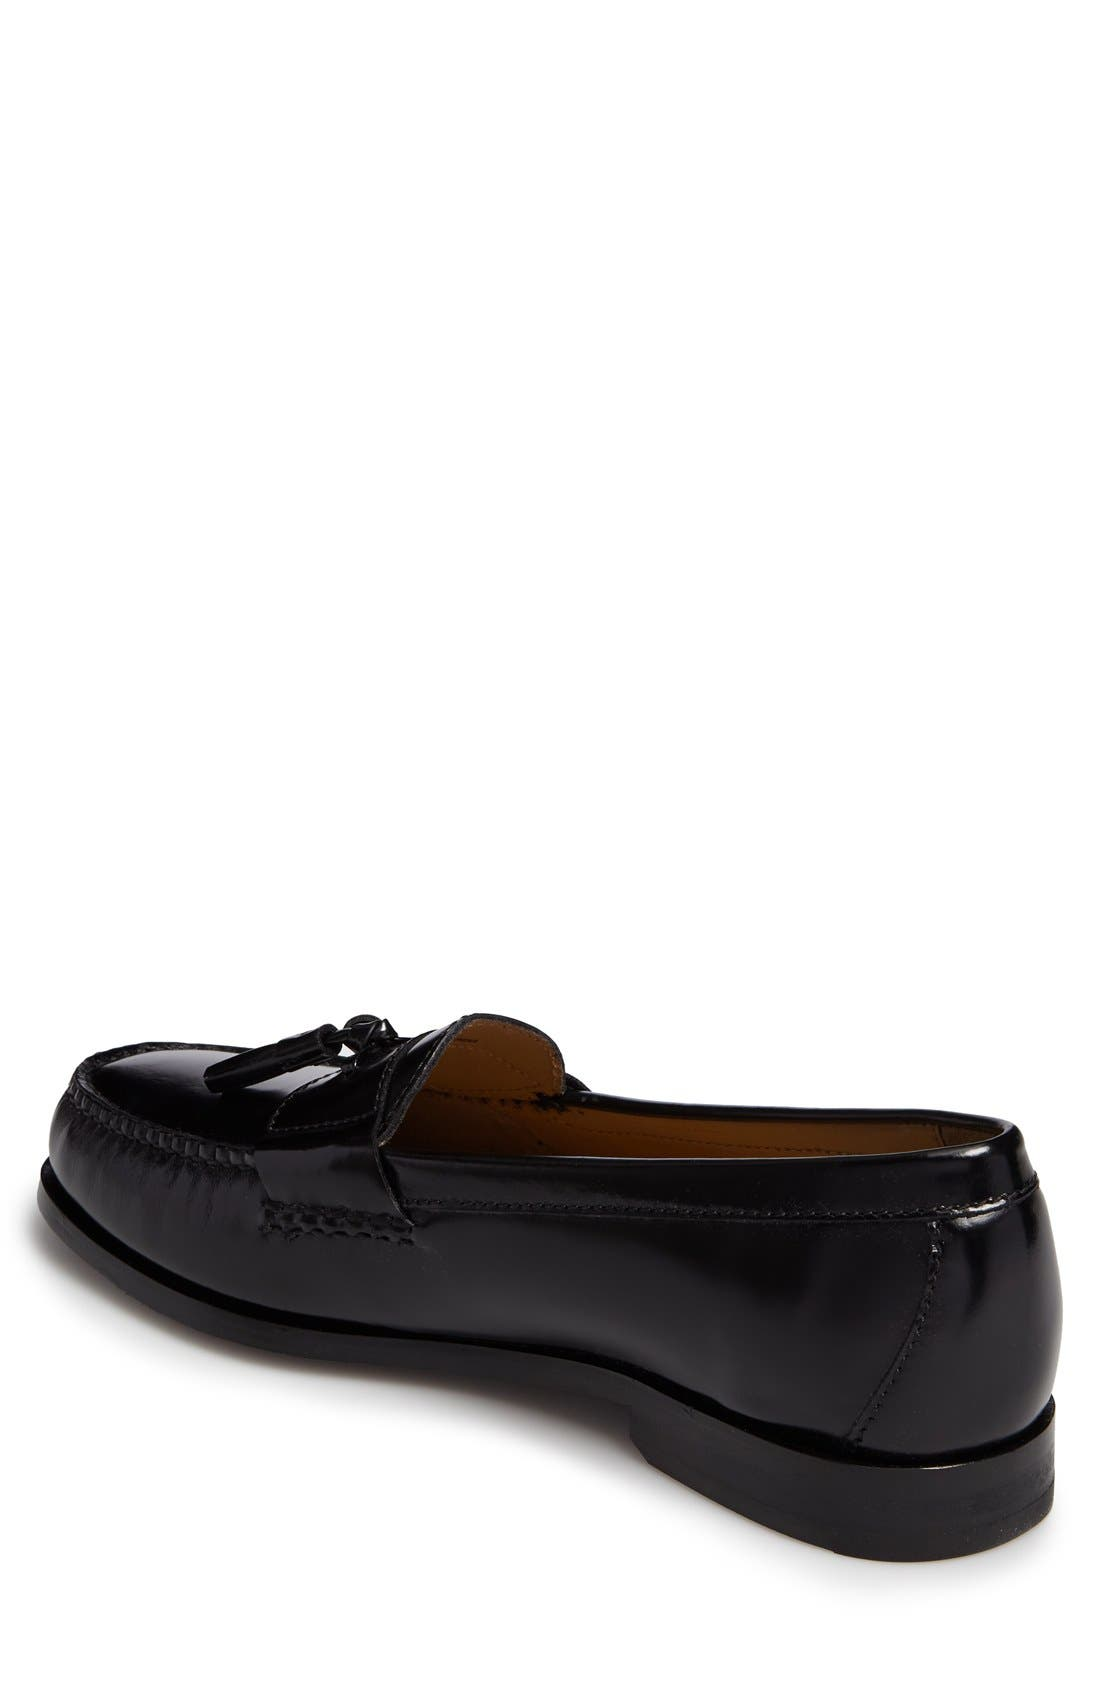 'Pinch Grand' Tassel Loafer,                             Alternate thumbnail 6, color,                             001